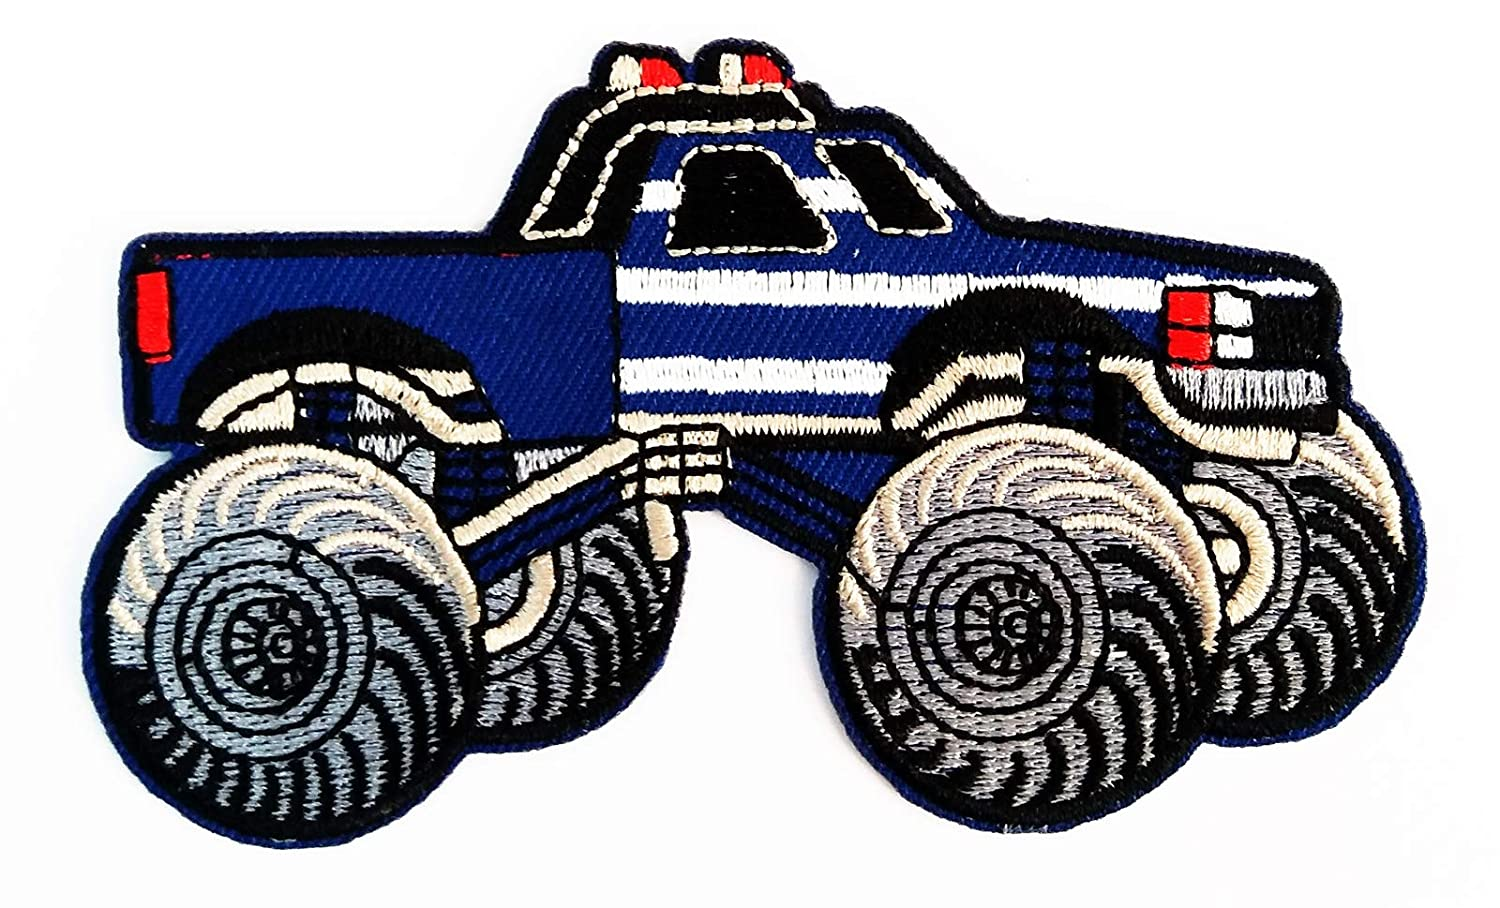 Car Classic Old Blue Vintage Hot Rod Monster Truck Cartoon 3 75x2 25 In Megadee Patch Badge Motogp Racing Vintage Classic Biker Racer Club Sew Iron On Logo Embroidered Car Cartoon 020 Amazon In Home